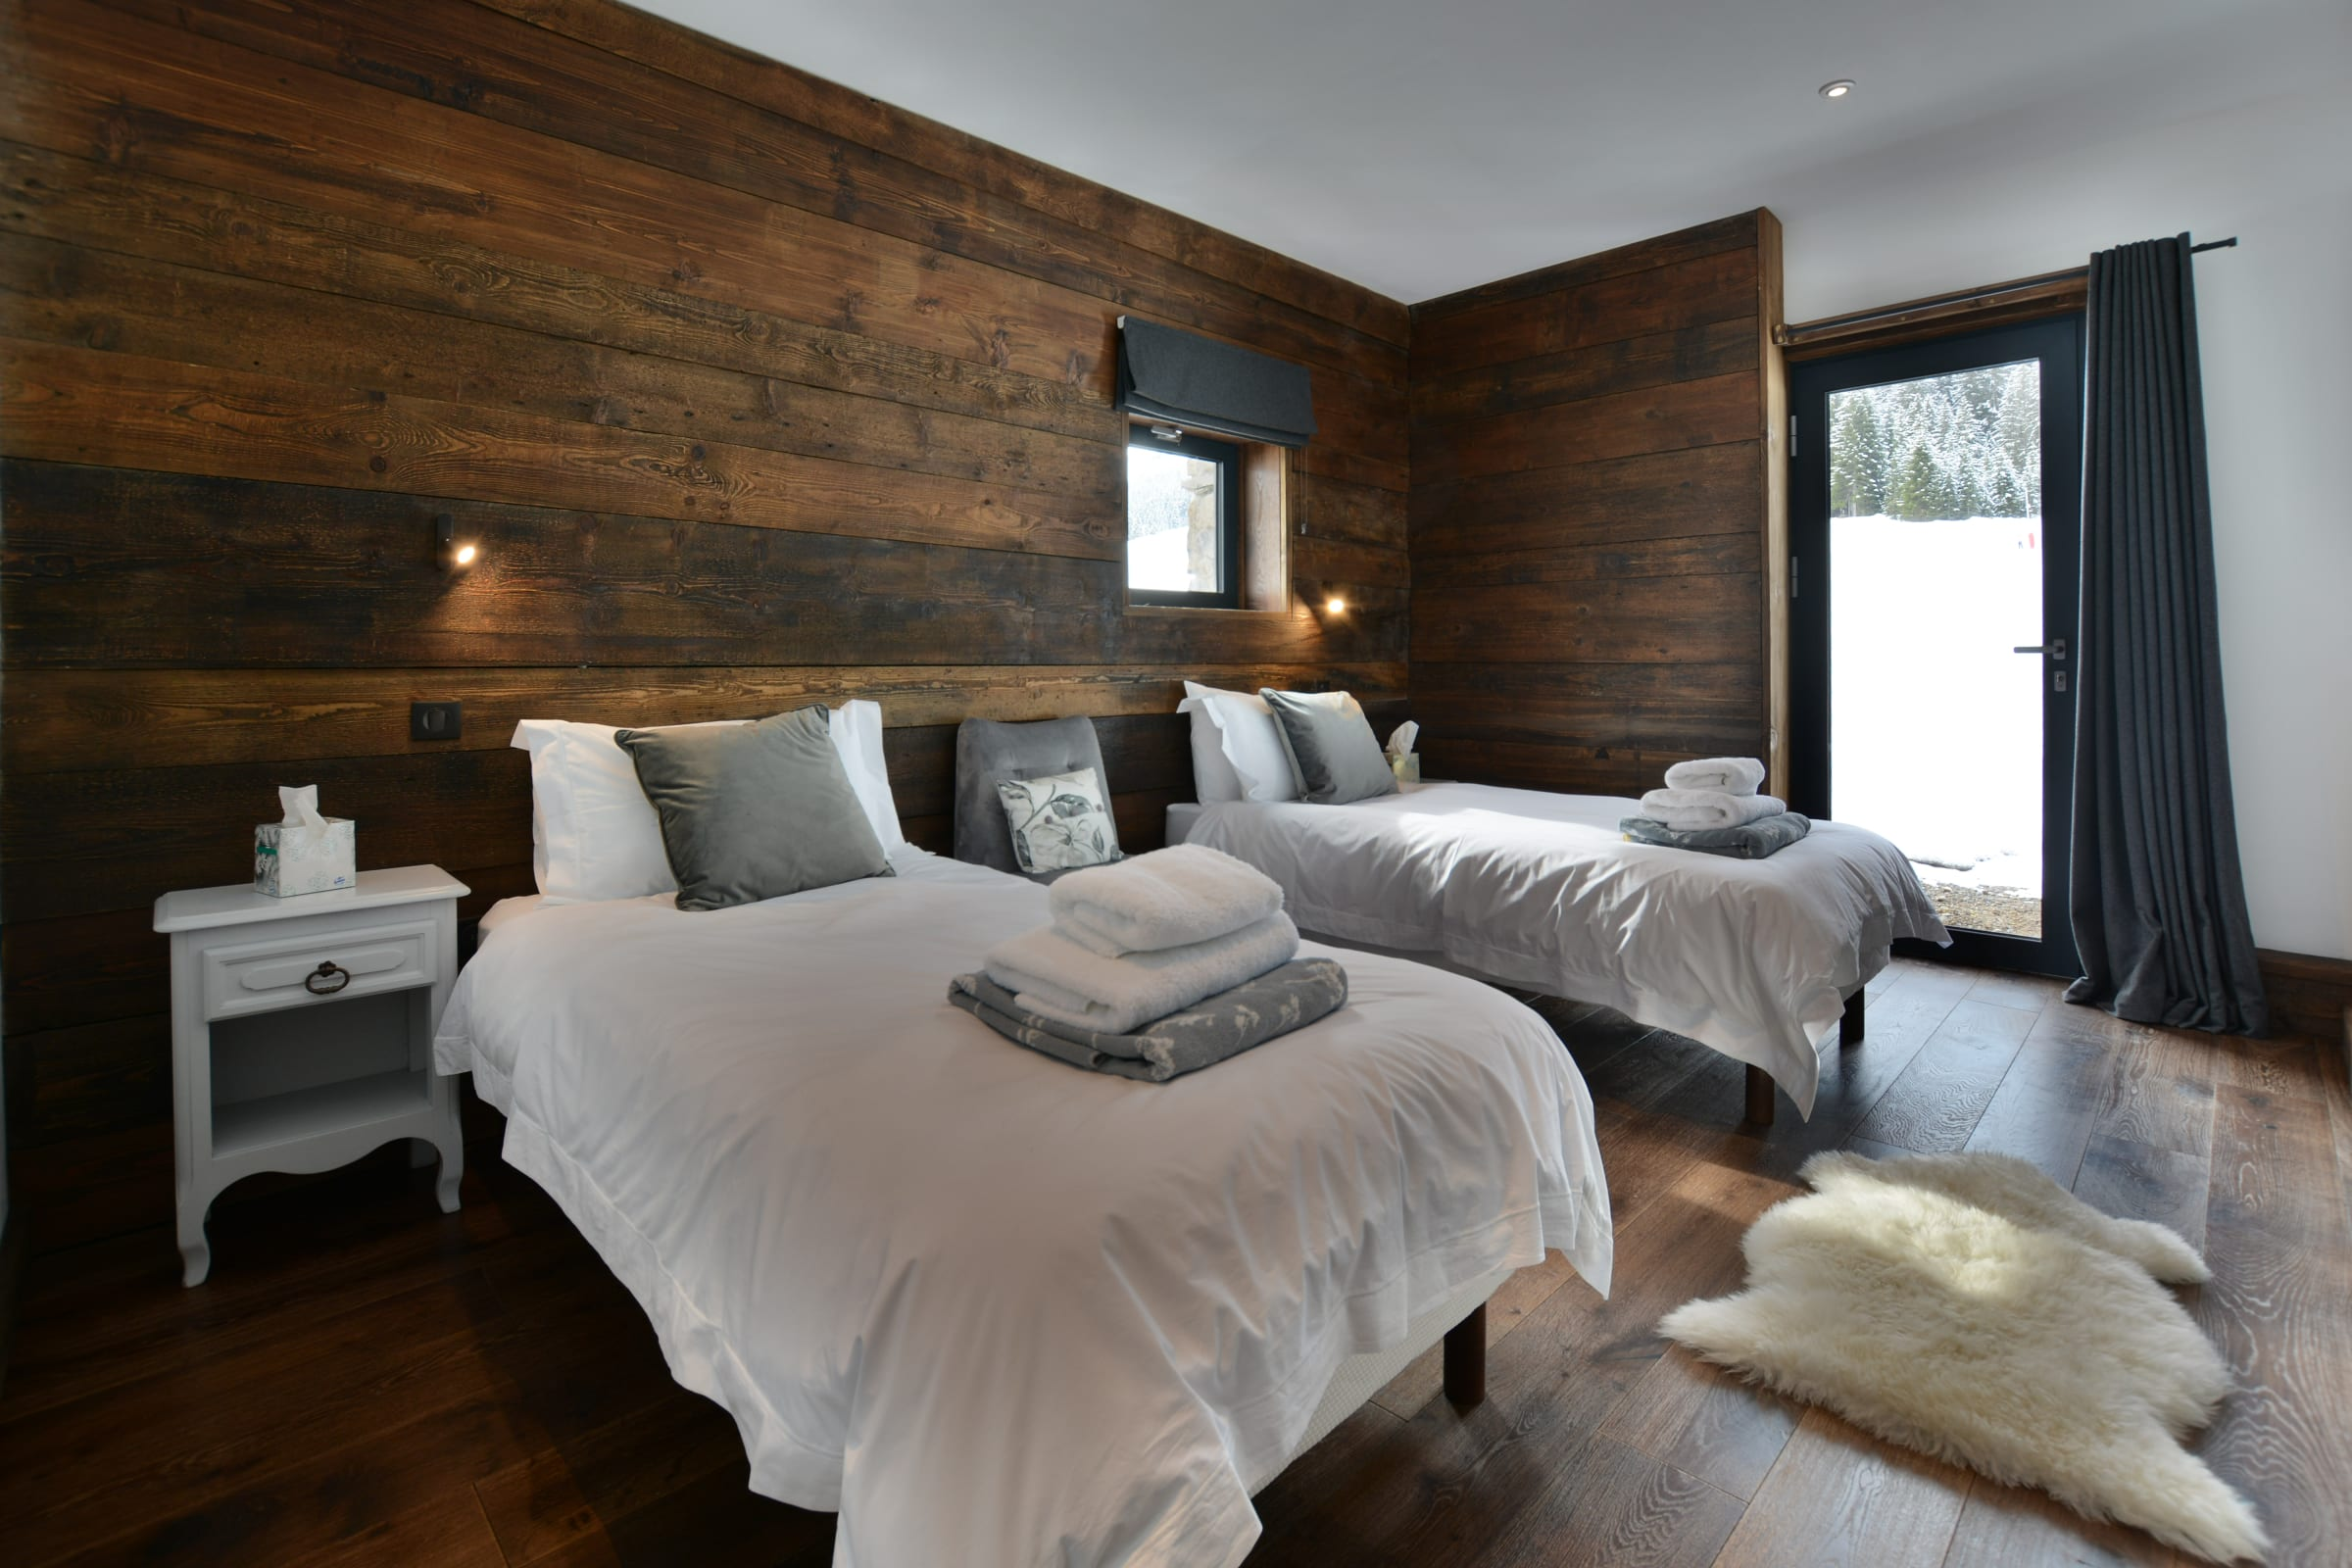 Ski chalet with urban nature wood floors 4